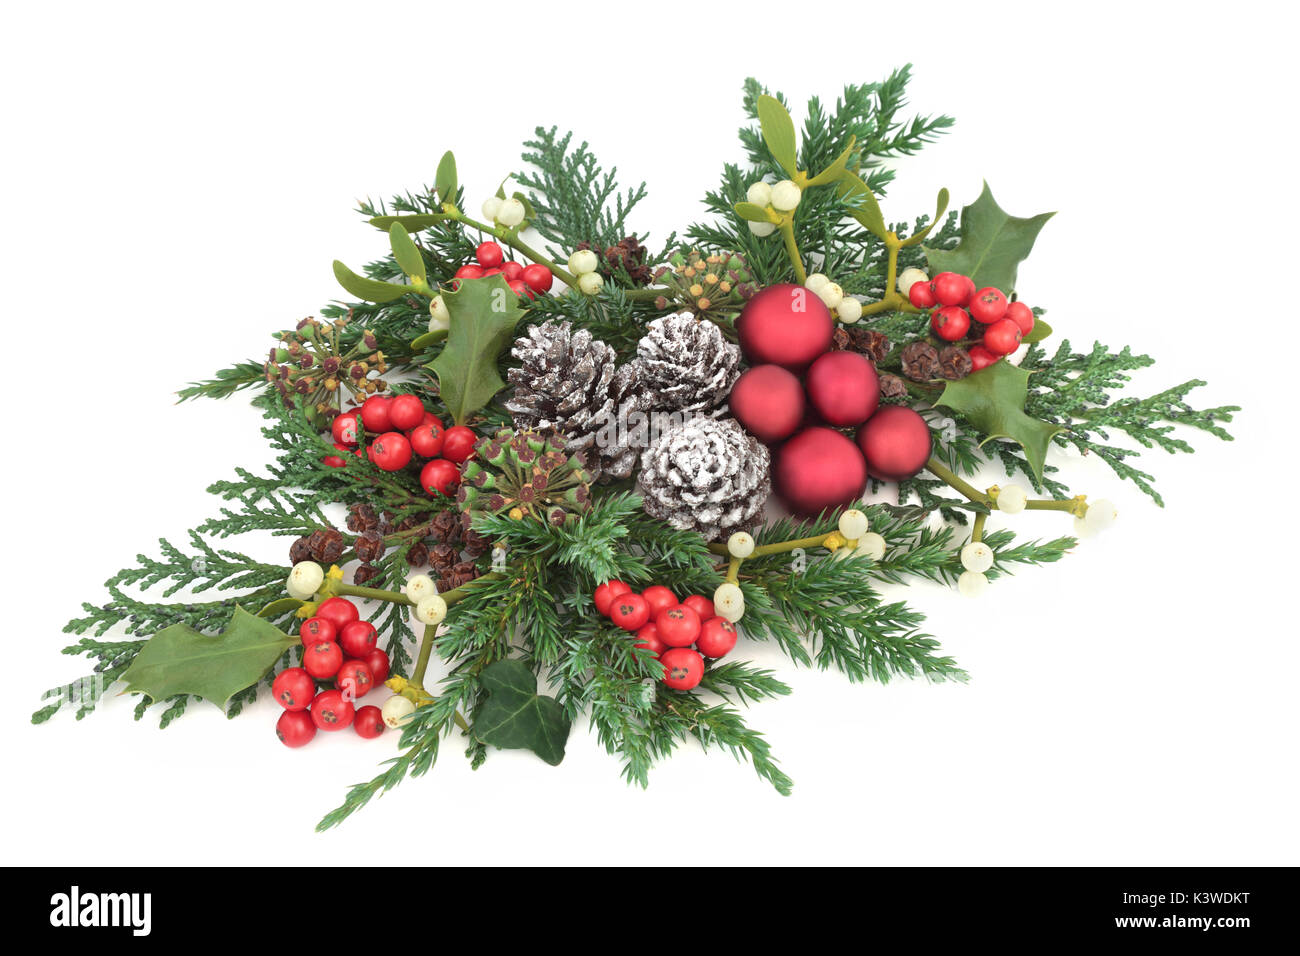 Christmas Fauna With Red Bauble Decorations Holly Ivy